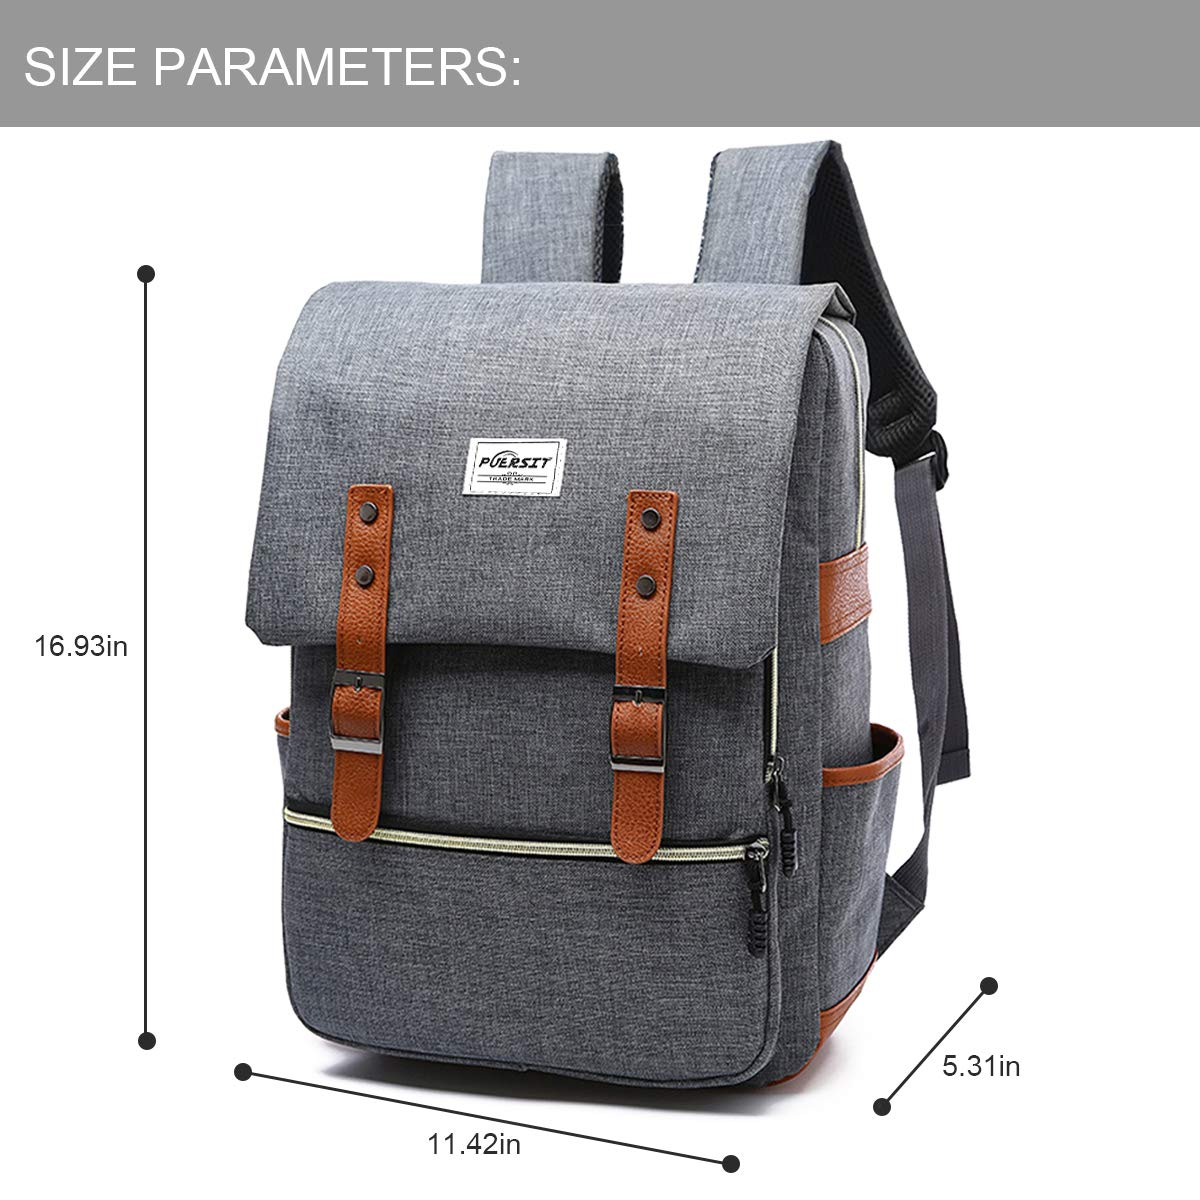 Amazon.com: 15In Vintage Laptop Backpack Canvas College Backpack School Bag Fits 15inch Laptop by Puersit(Gray): Computers & Accessories